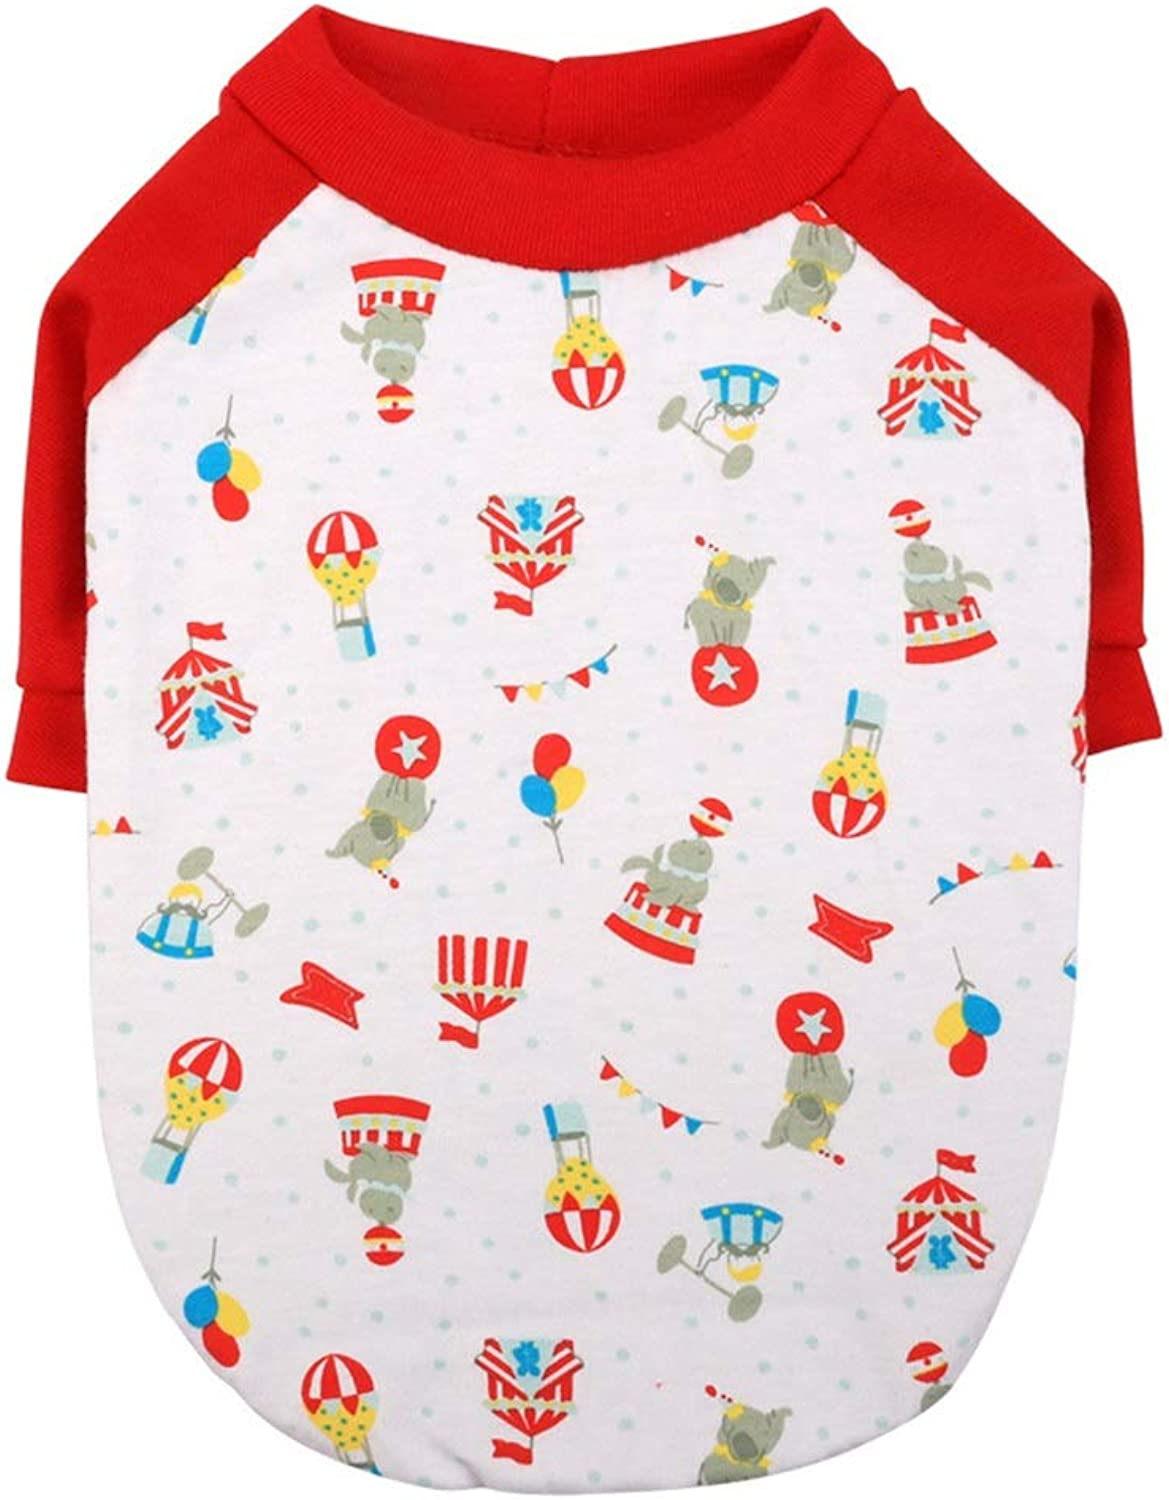 Huayue Cotton Precious Dog Bout Neck Shirt Pet Clothing ShortSleeved TShirt (color   Red, Size   S)